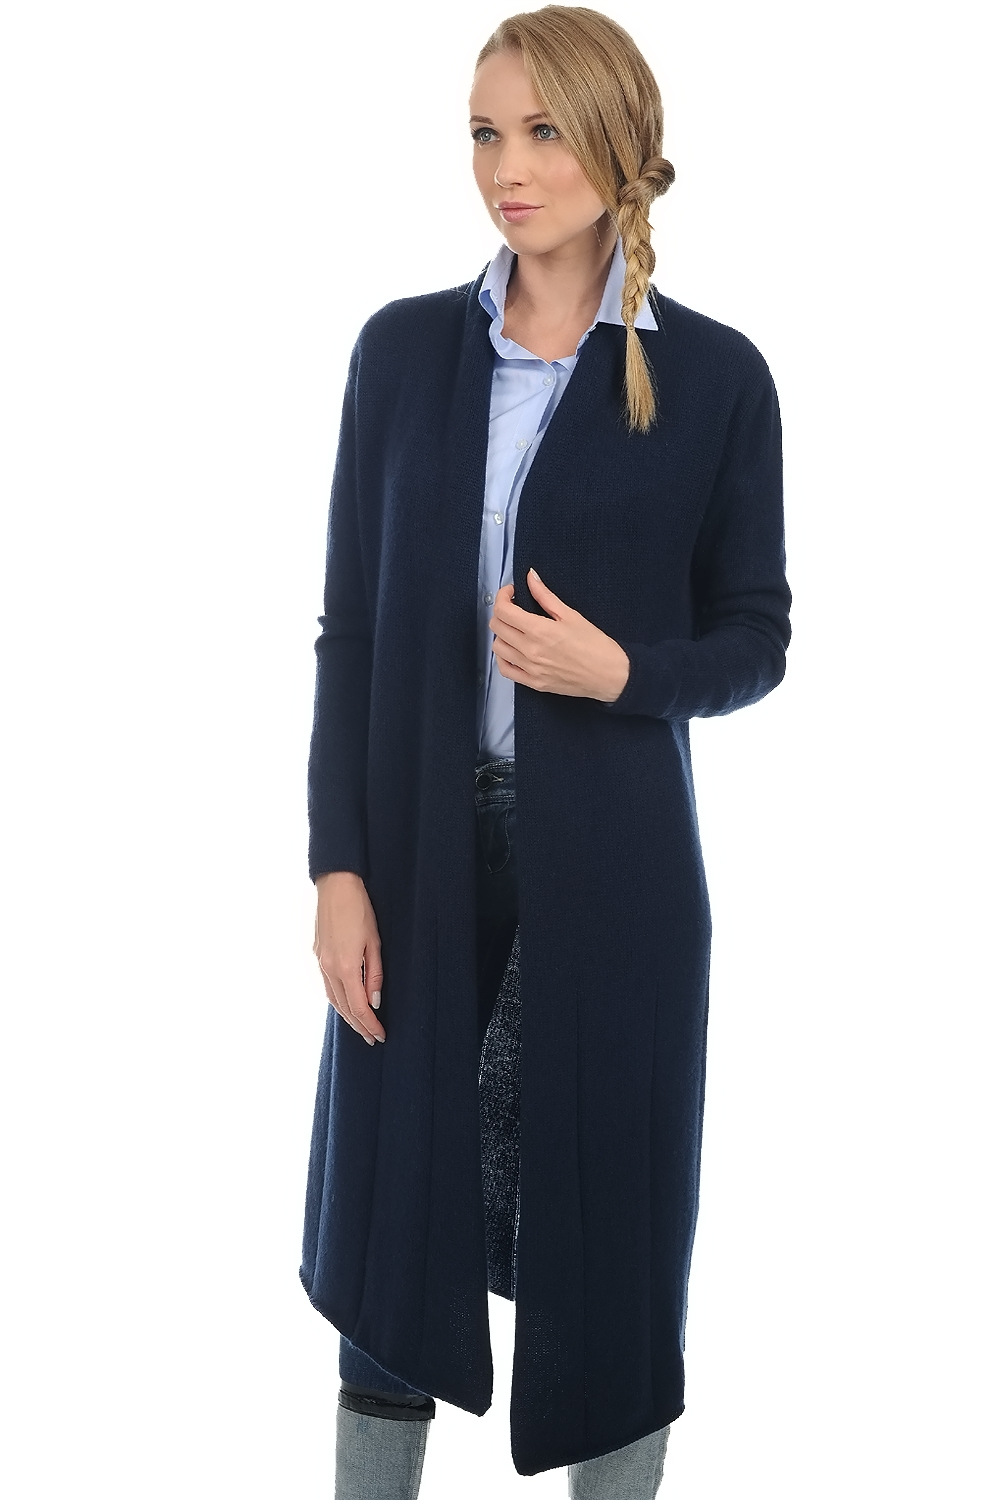 cachemire robe manteau femme stacy marine fonce s